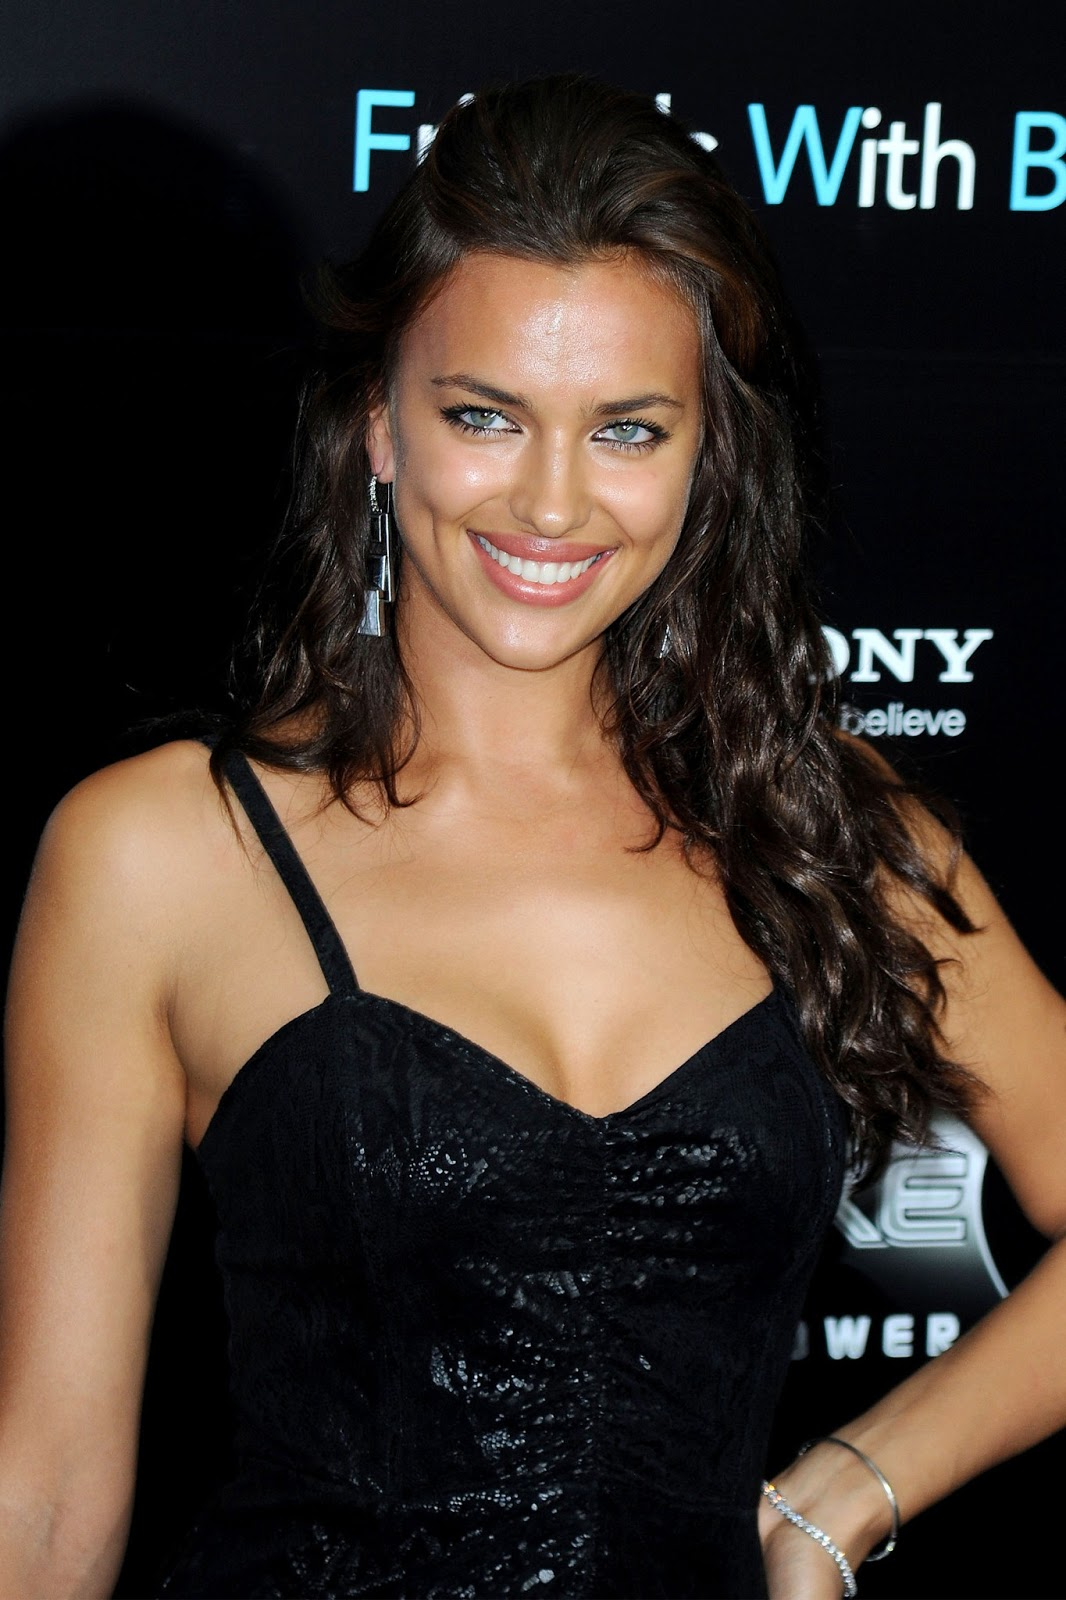 Quotes On Wallpapers Free Download Irina Shayk Hd Wallpapers Hd Wallpapers High Definition